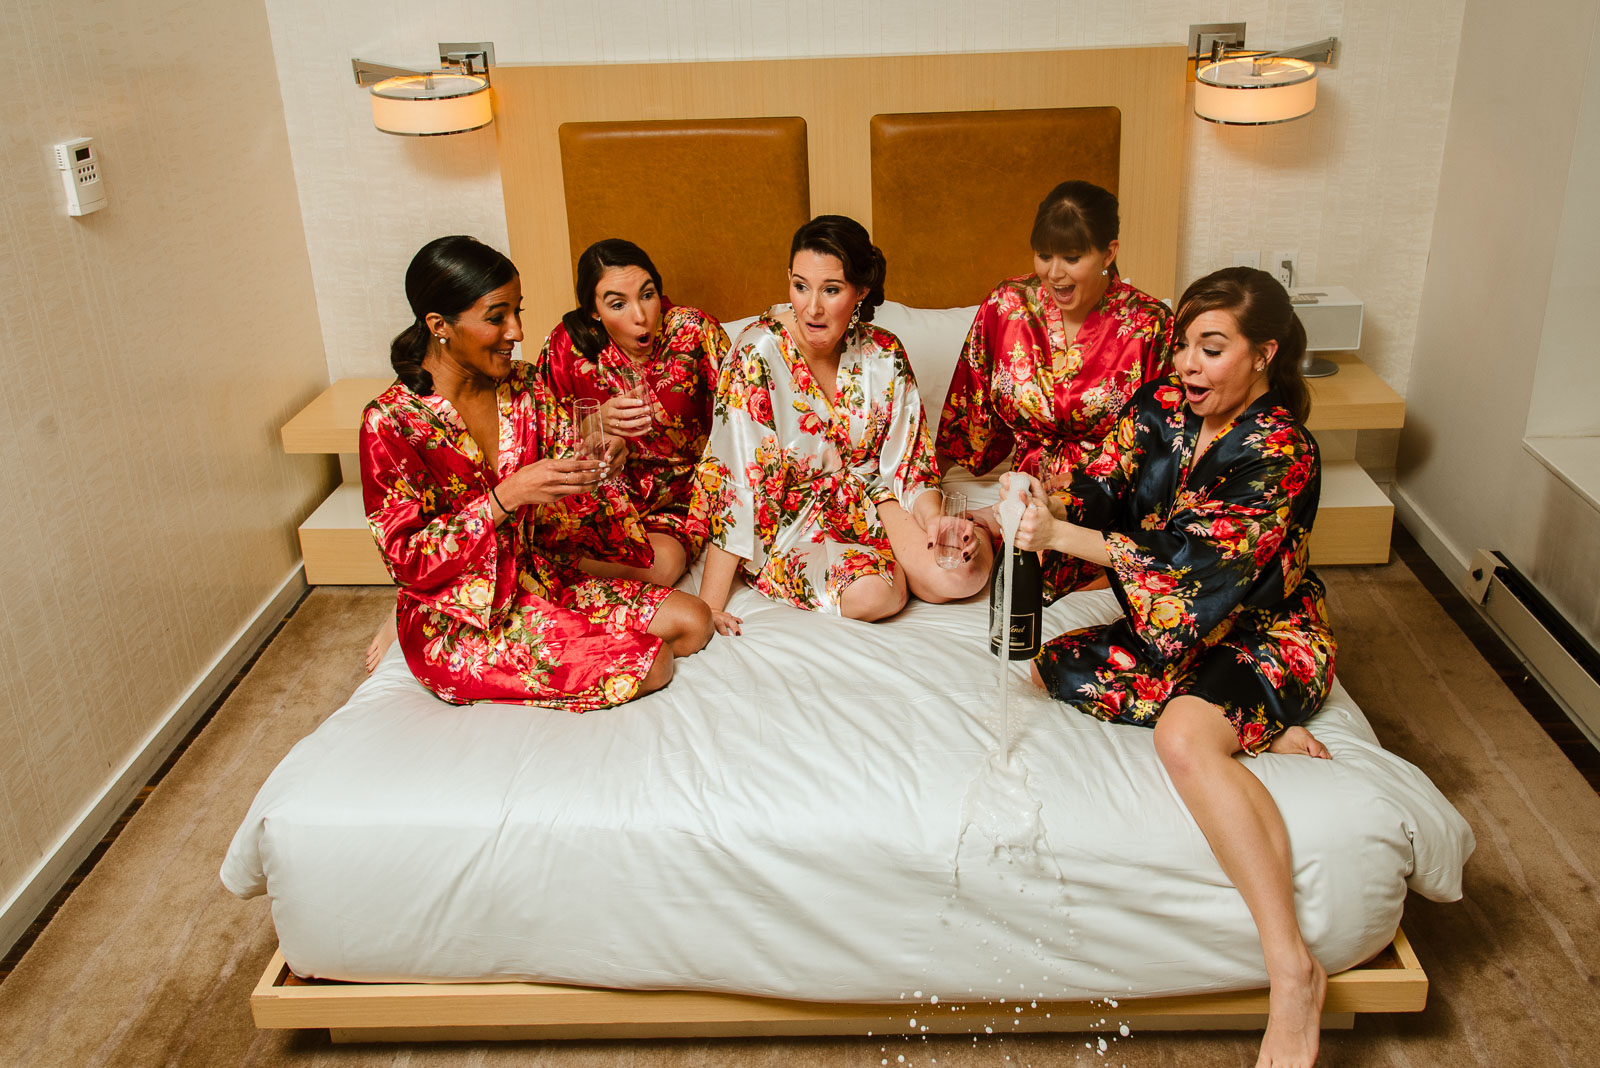 Bridesmaids open bottle of champagne